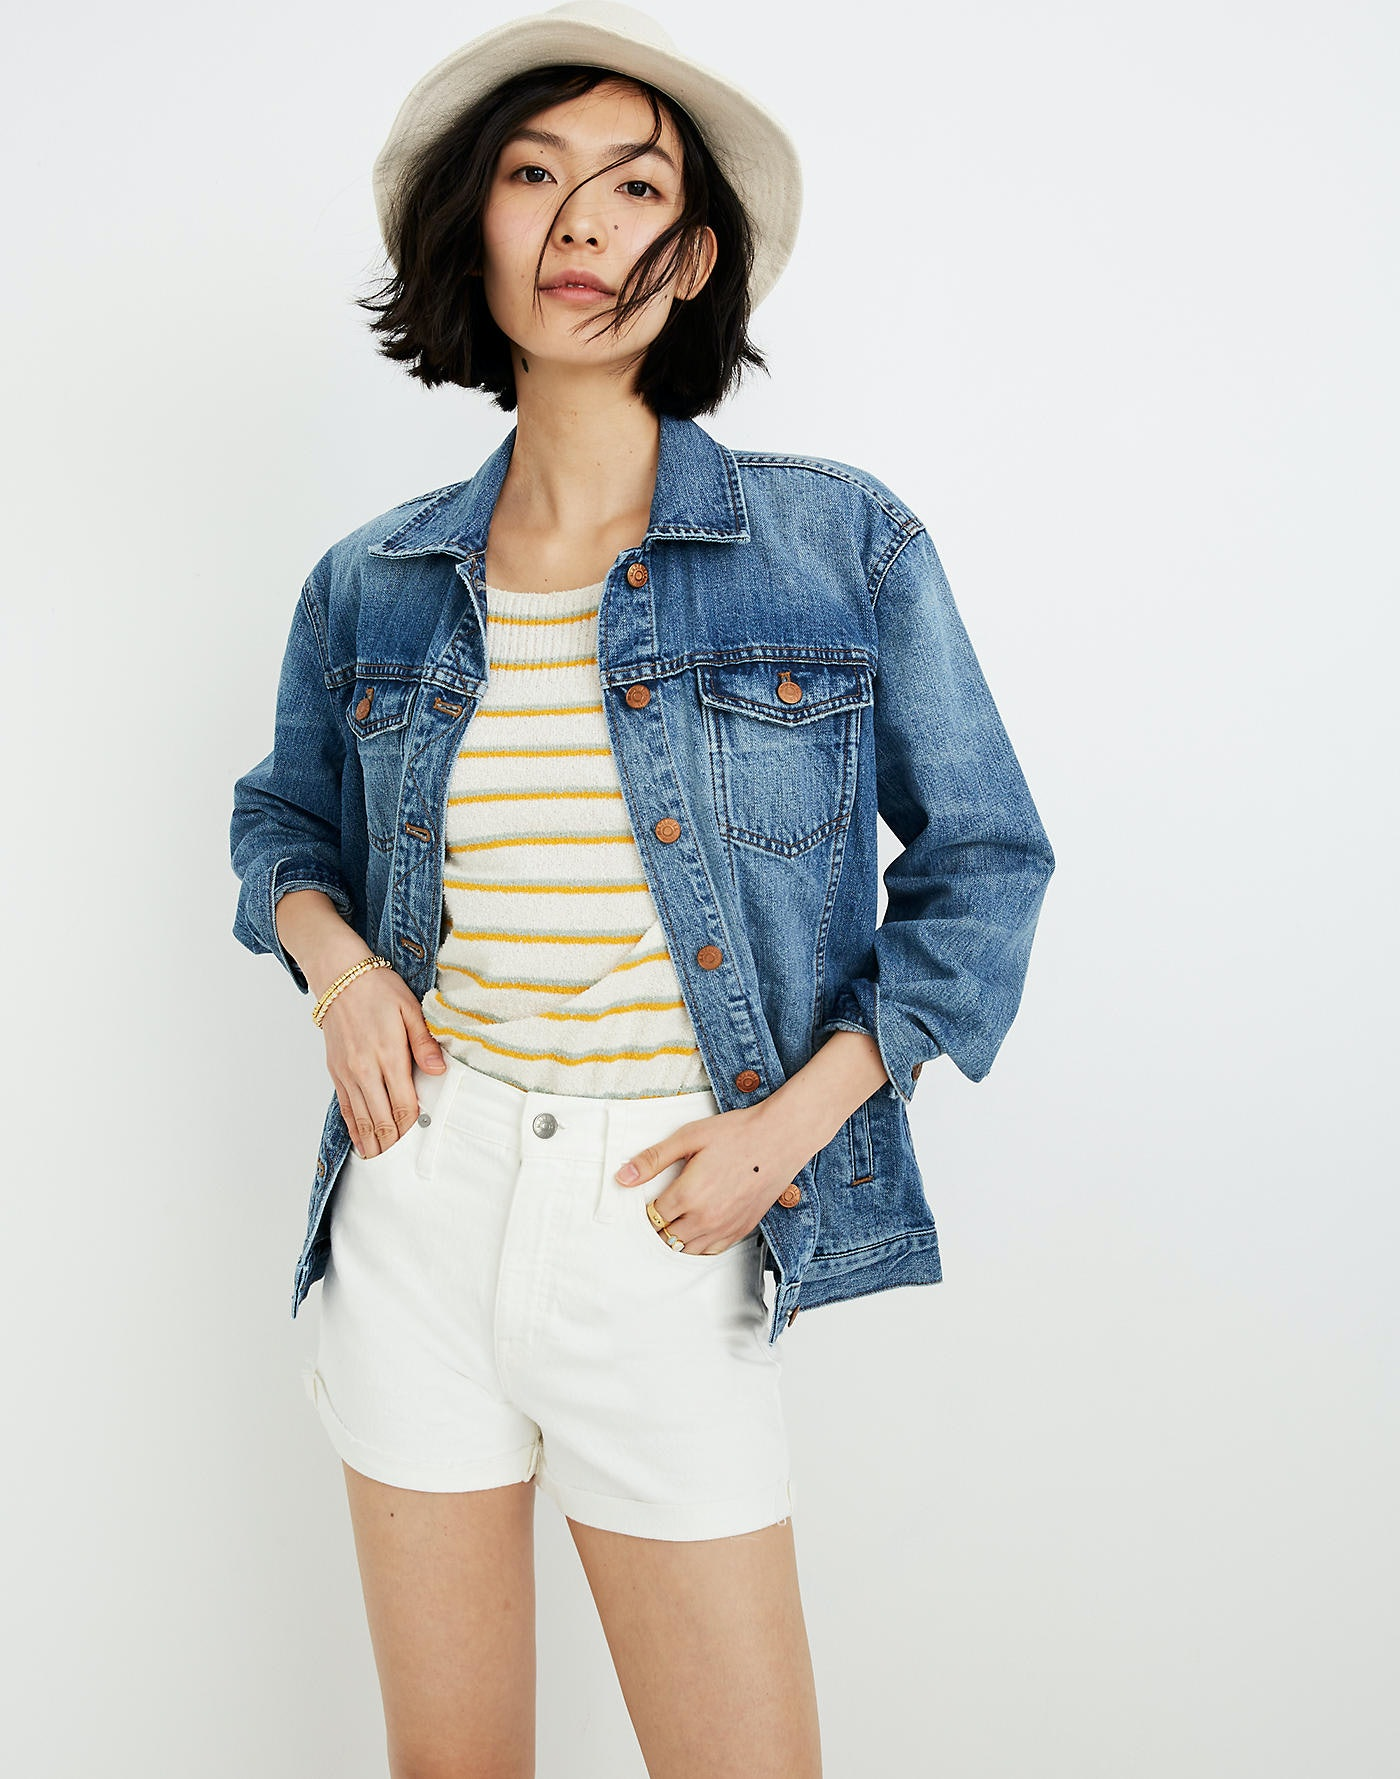 5669770d6 Madewell's Fourth Of July Sale Is Here & There Are A Bunch Of Denim Shorts  Under $60